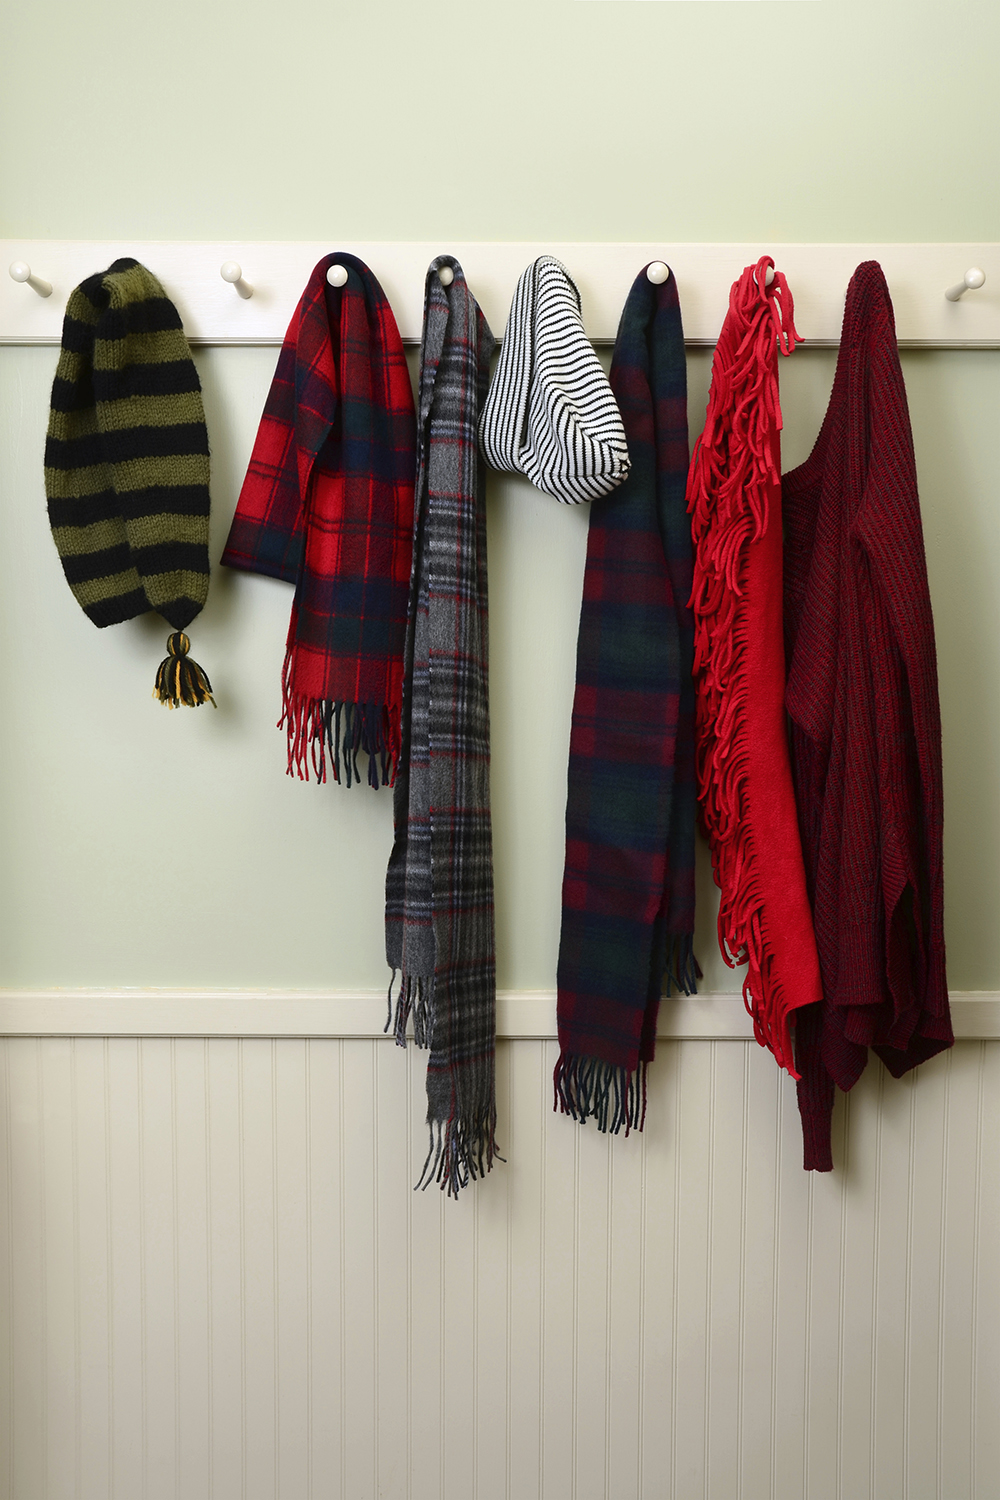 Scarves and hats on rack